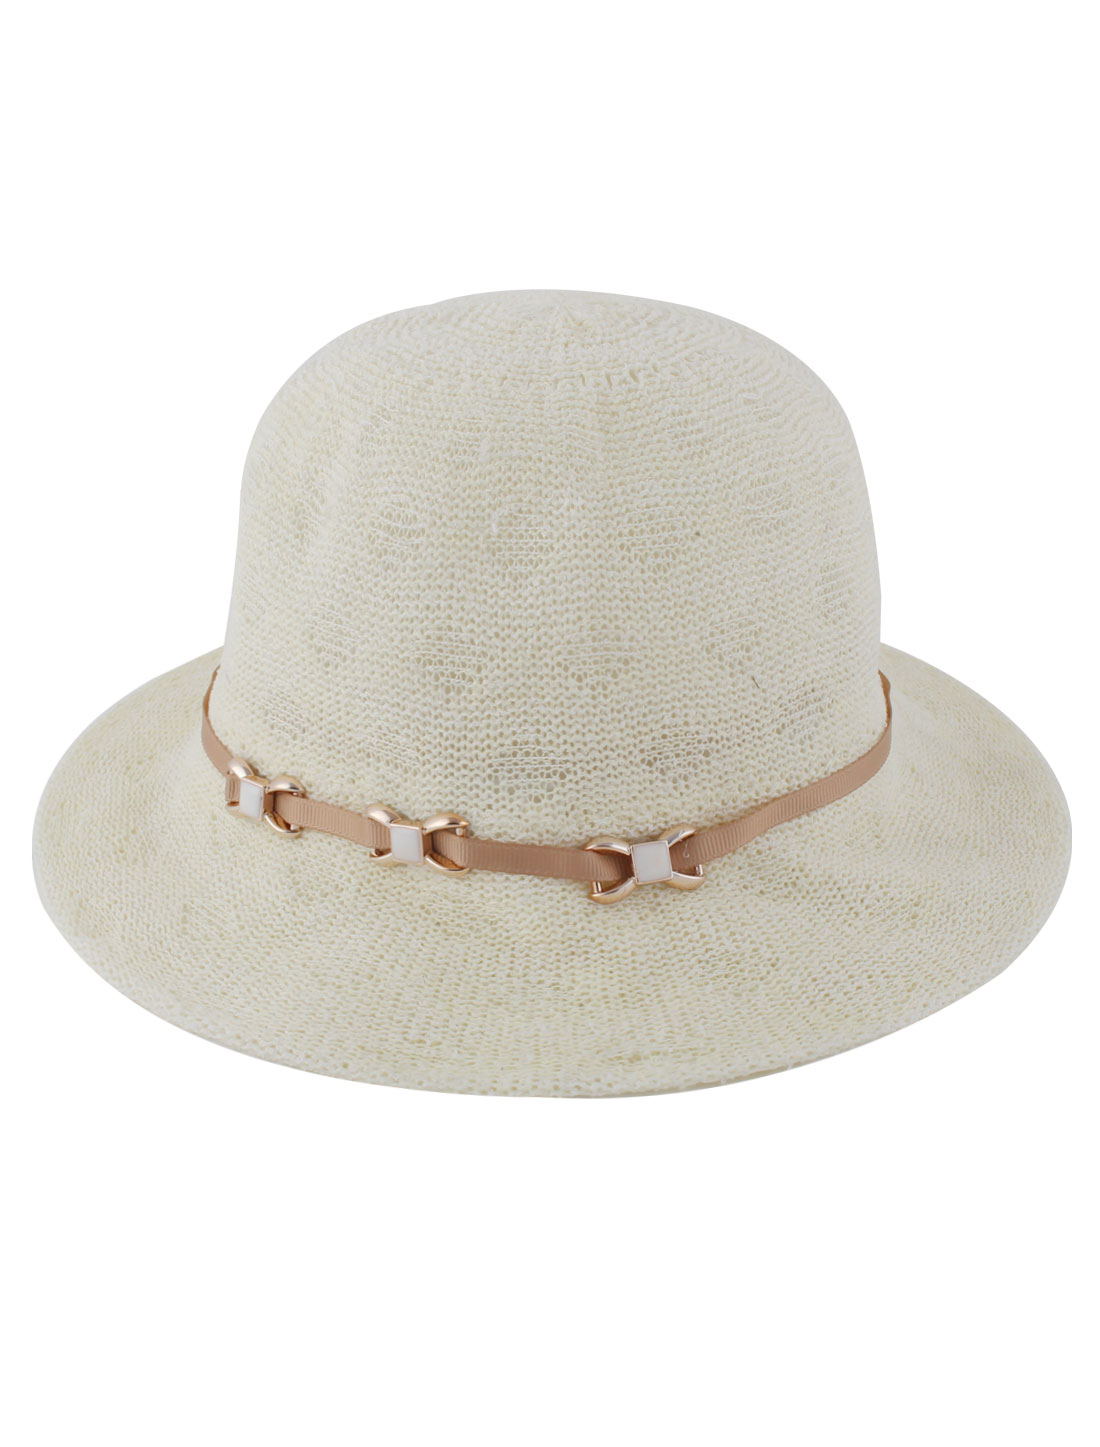 Women Polyester Woven Wide Brim Fashion Outdoor Beach Sun Hat Light Yellow